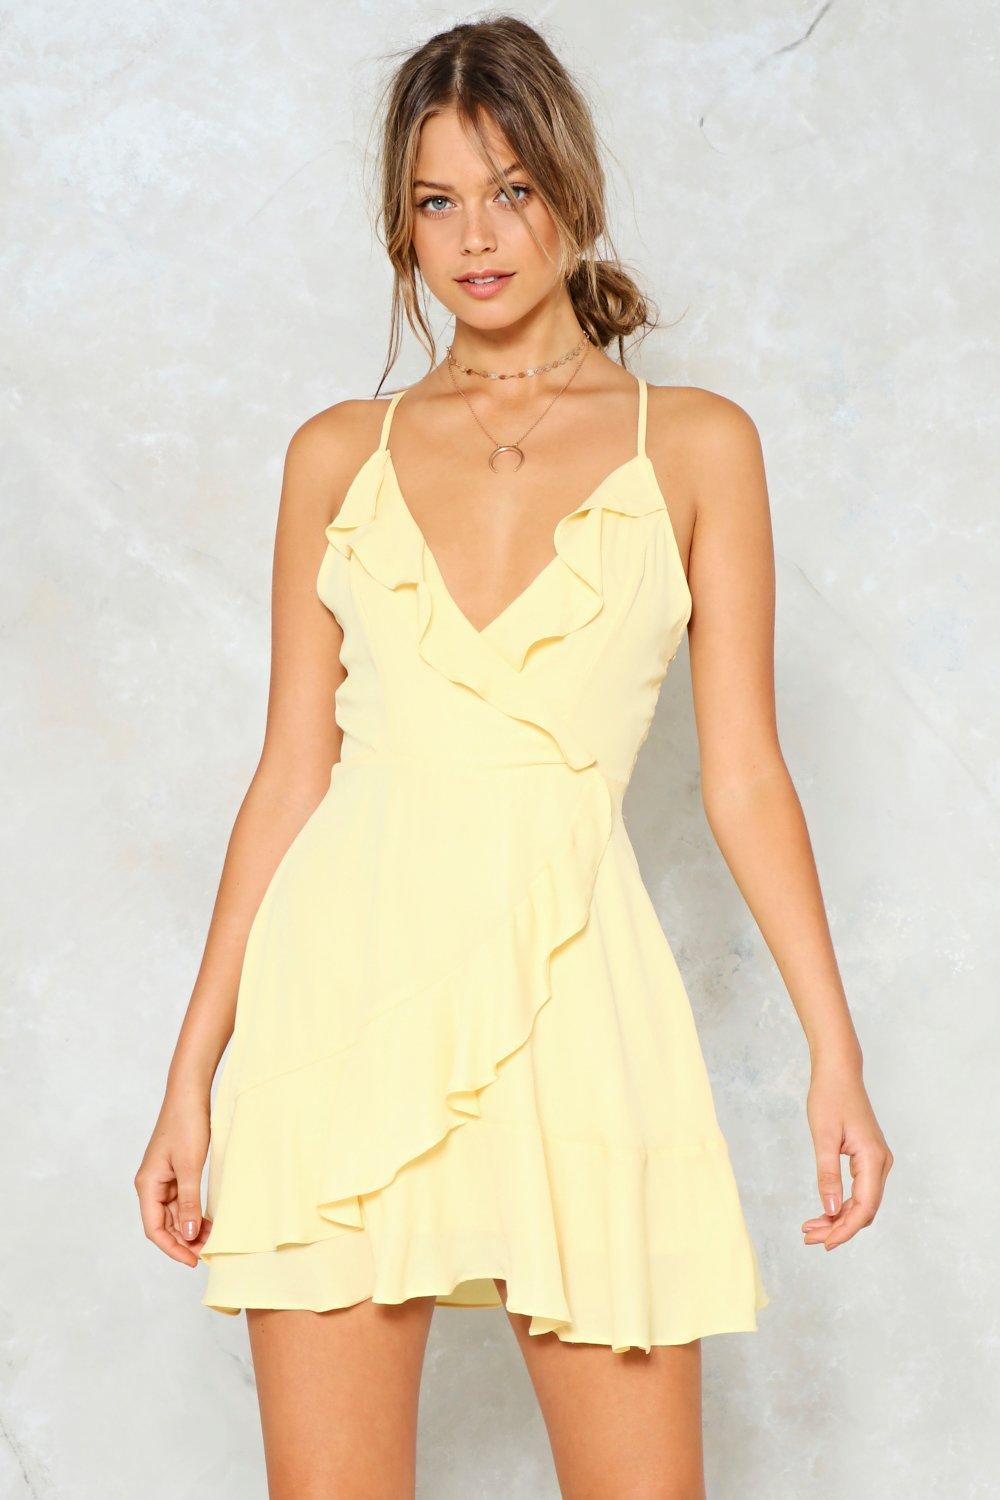 1bca95dc2b0166 Picture This Ruffle Mini Dress | Shop Clothes at Nasty Gal!